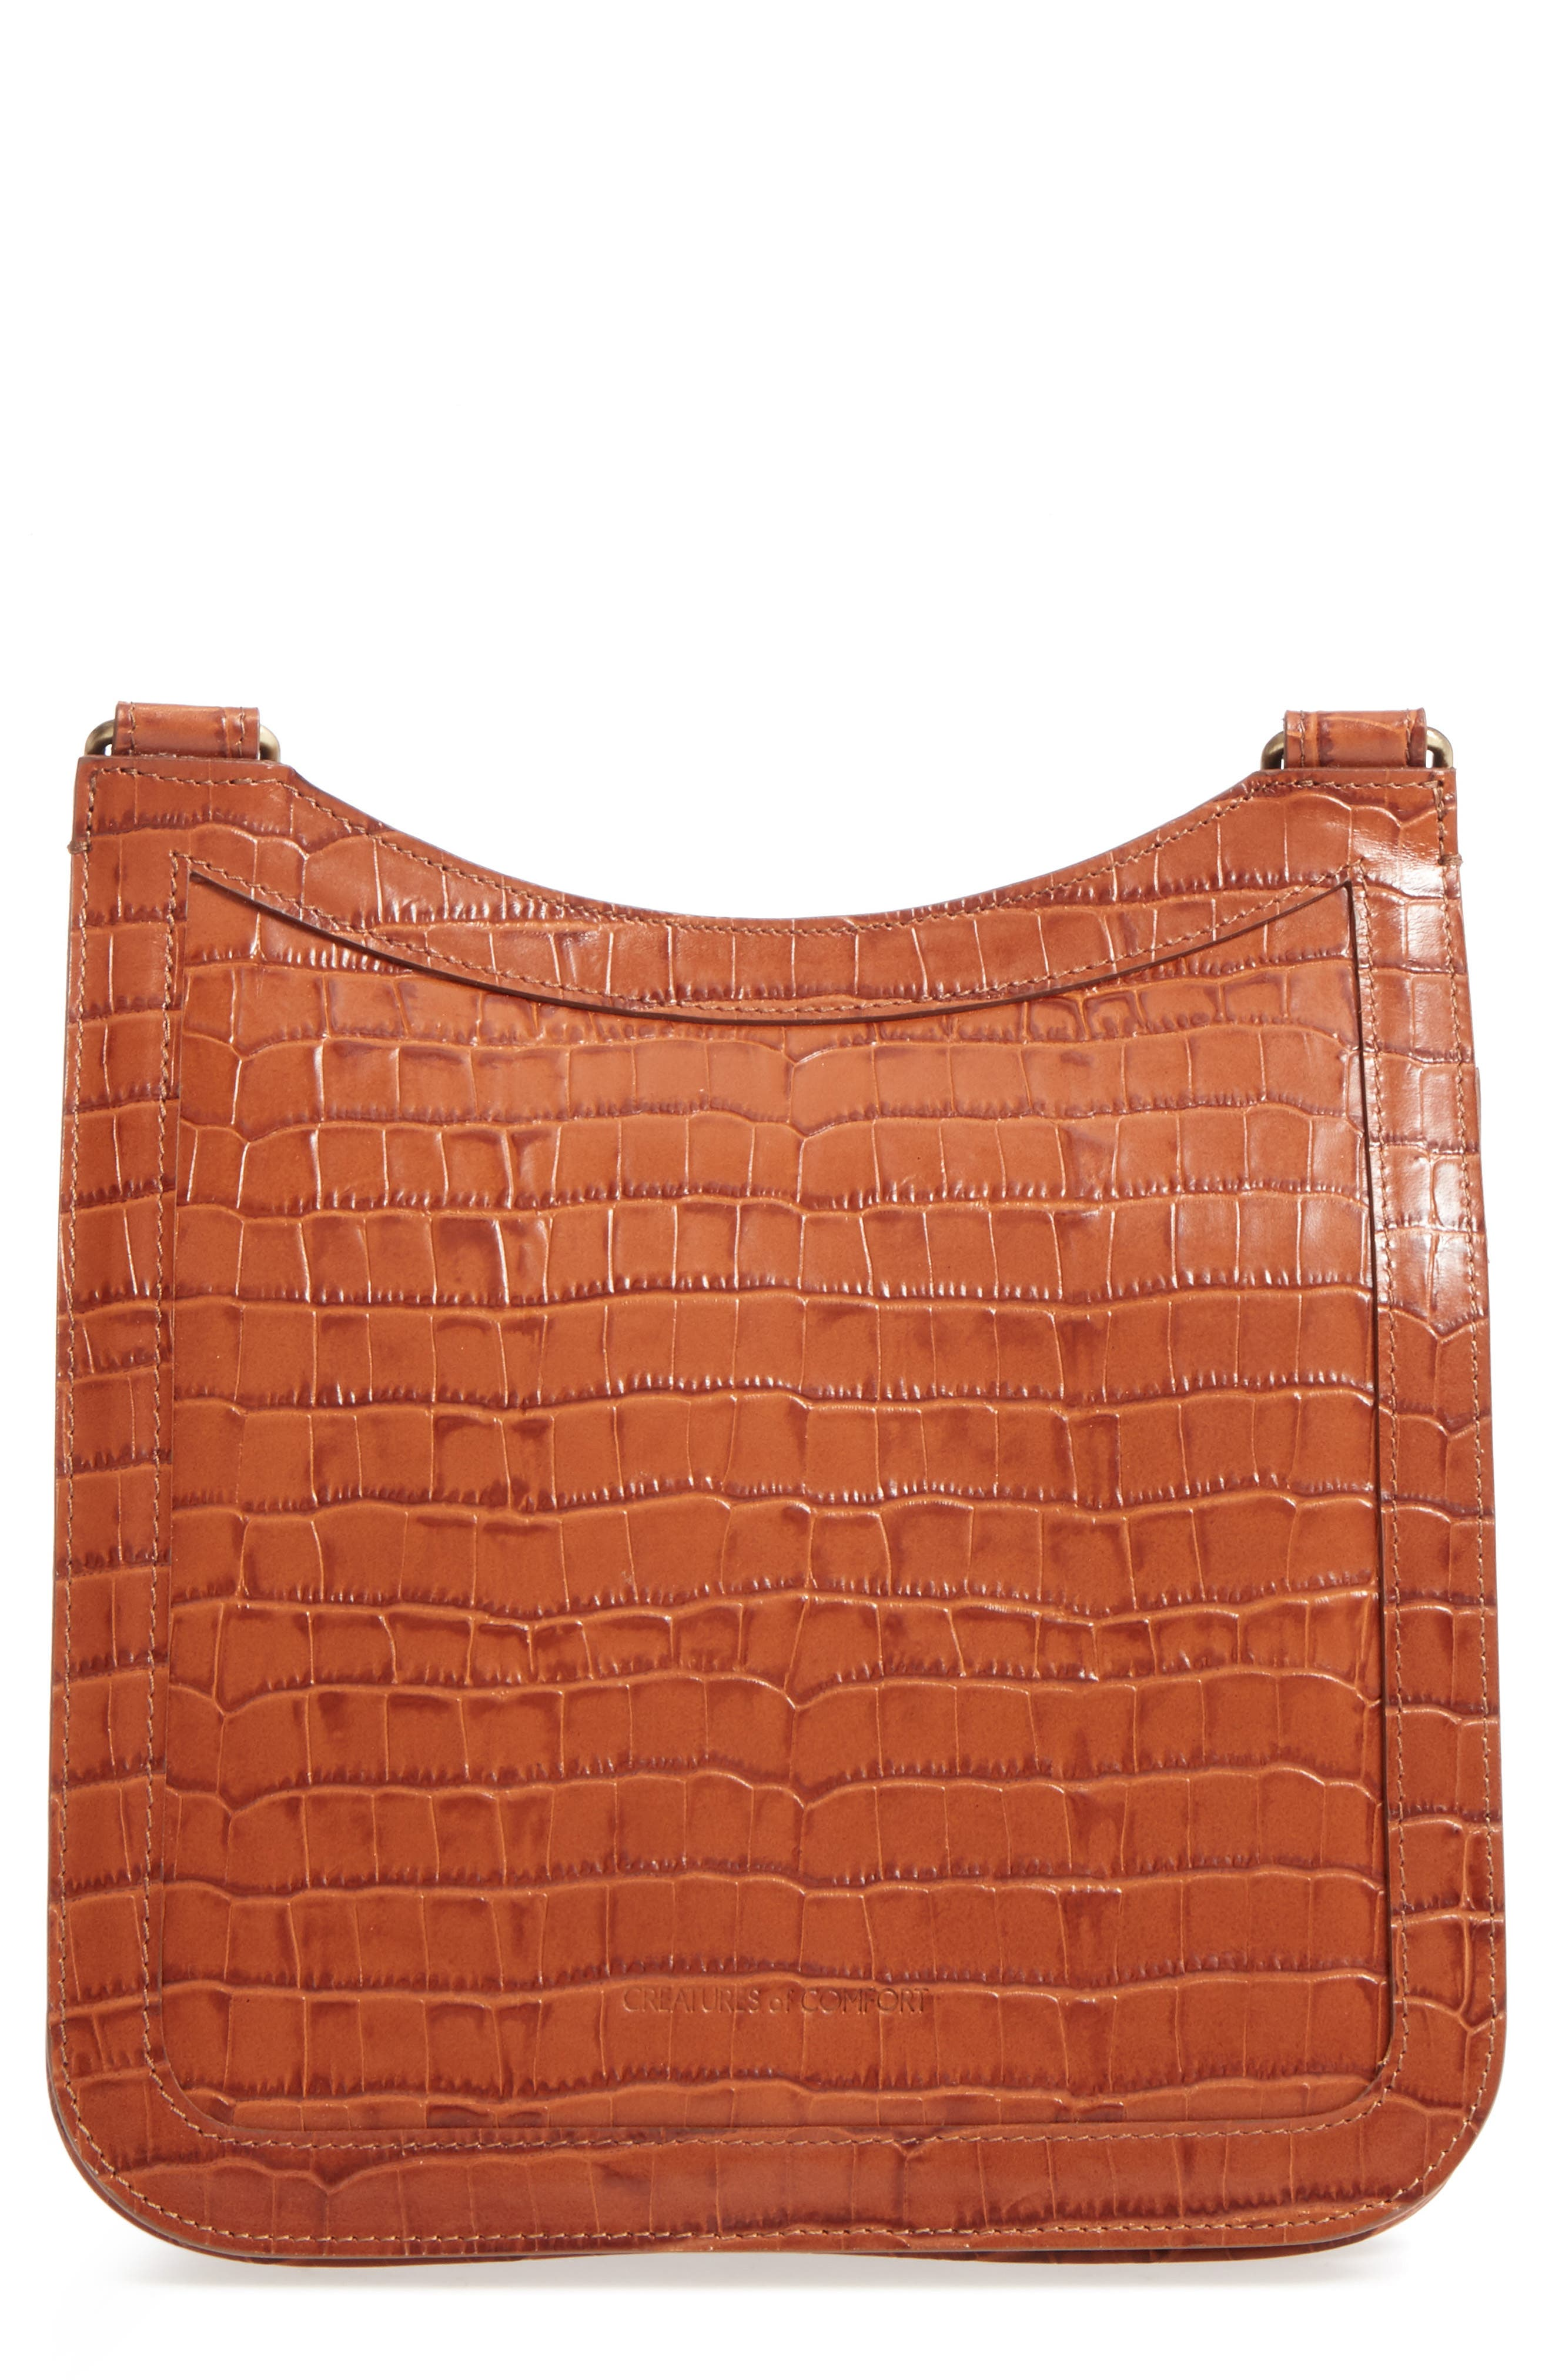 Tall Equestrian Croc Embossed Leather Crossbody Bag,                             Main thumbnail 1, color,                             Caramel